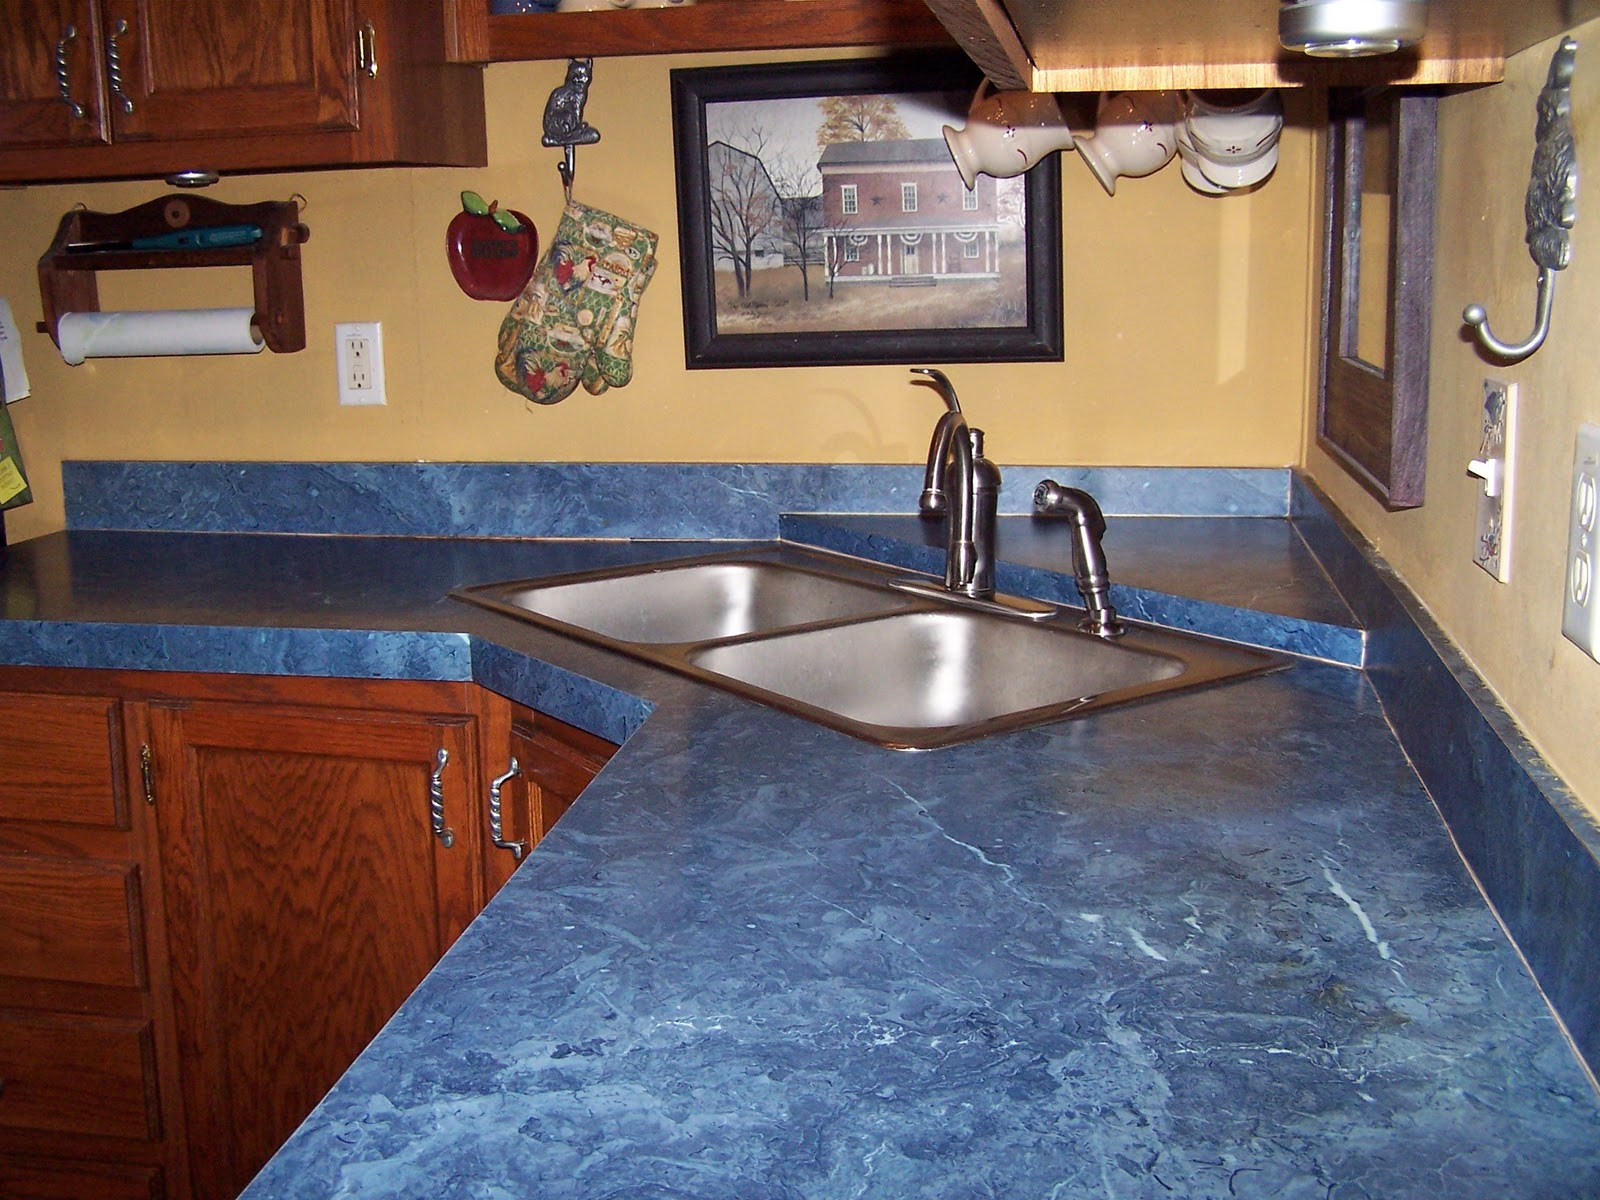 Remarkable Blue Laminate Kitchen Countertops Ideas 1600 x 1200 · 377 kB · jpeg